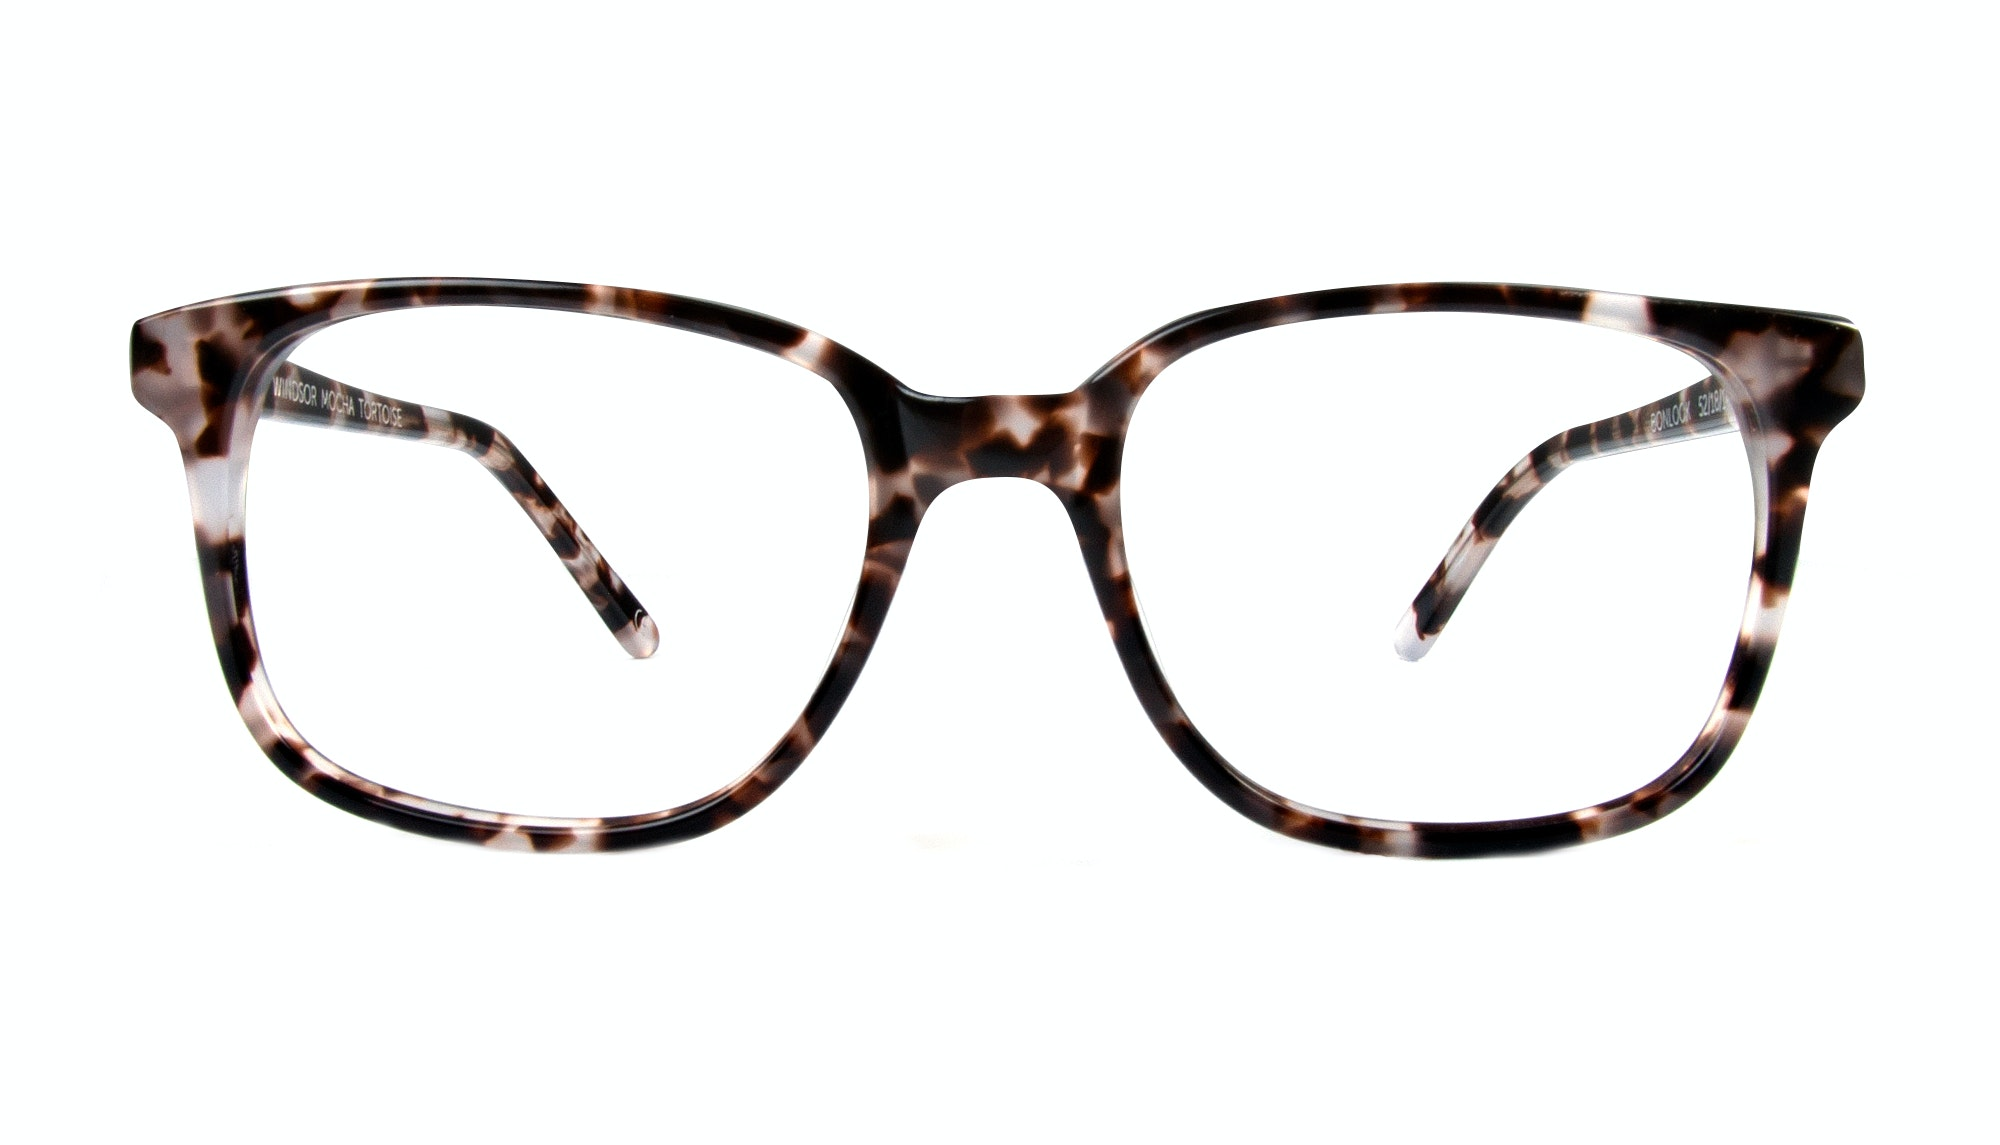 Affordable Fashion Glasses Square Eyeglasses Men Women Windsor Mocha Tortoise